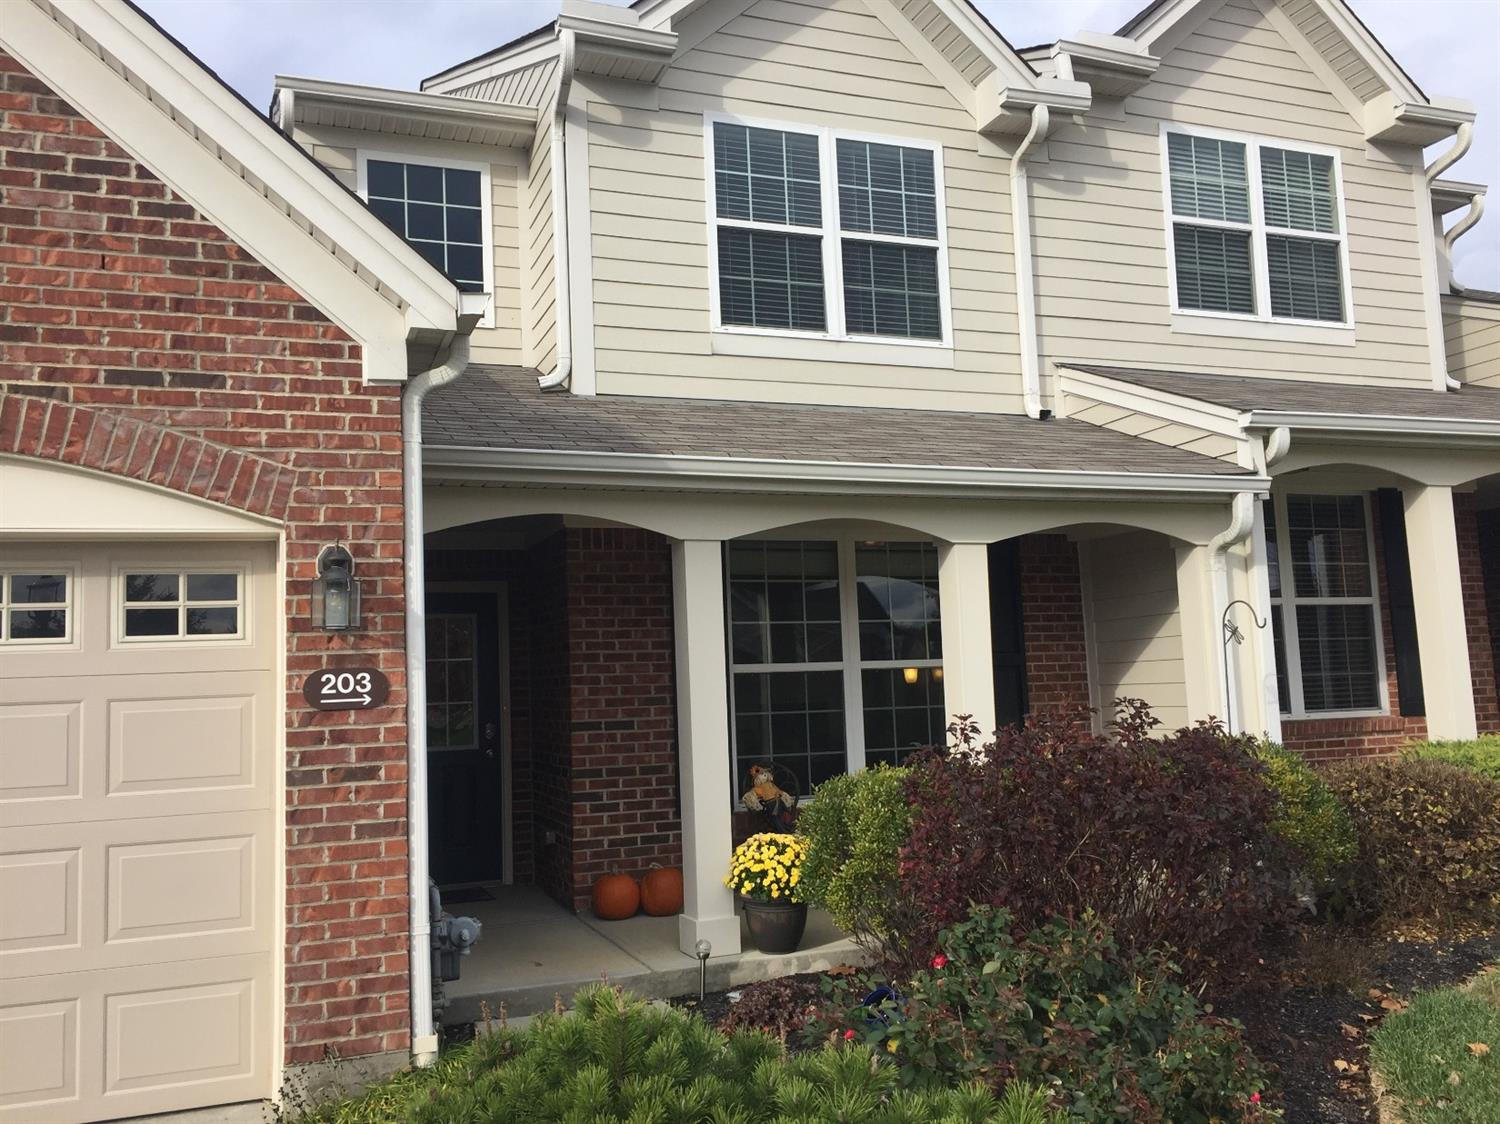 Property for sale at 203 Valley Forge Drive, Loveland,  OH 45140